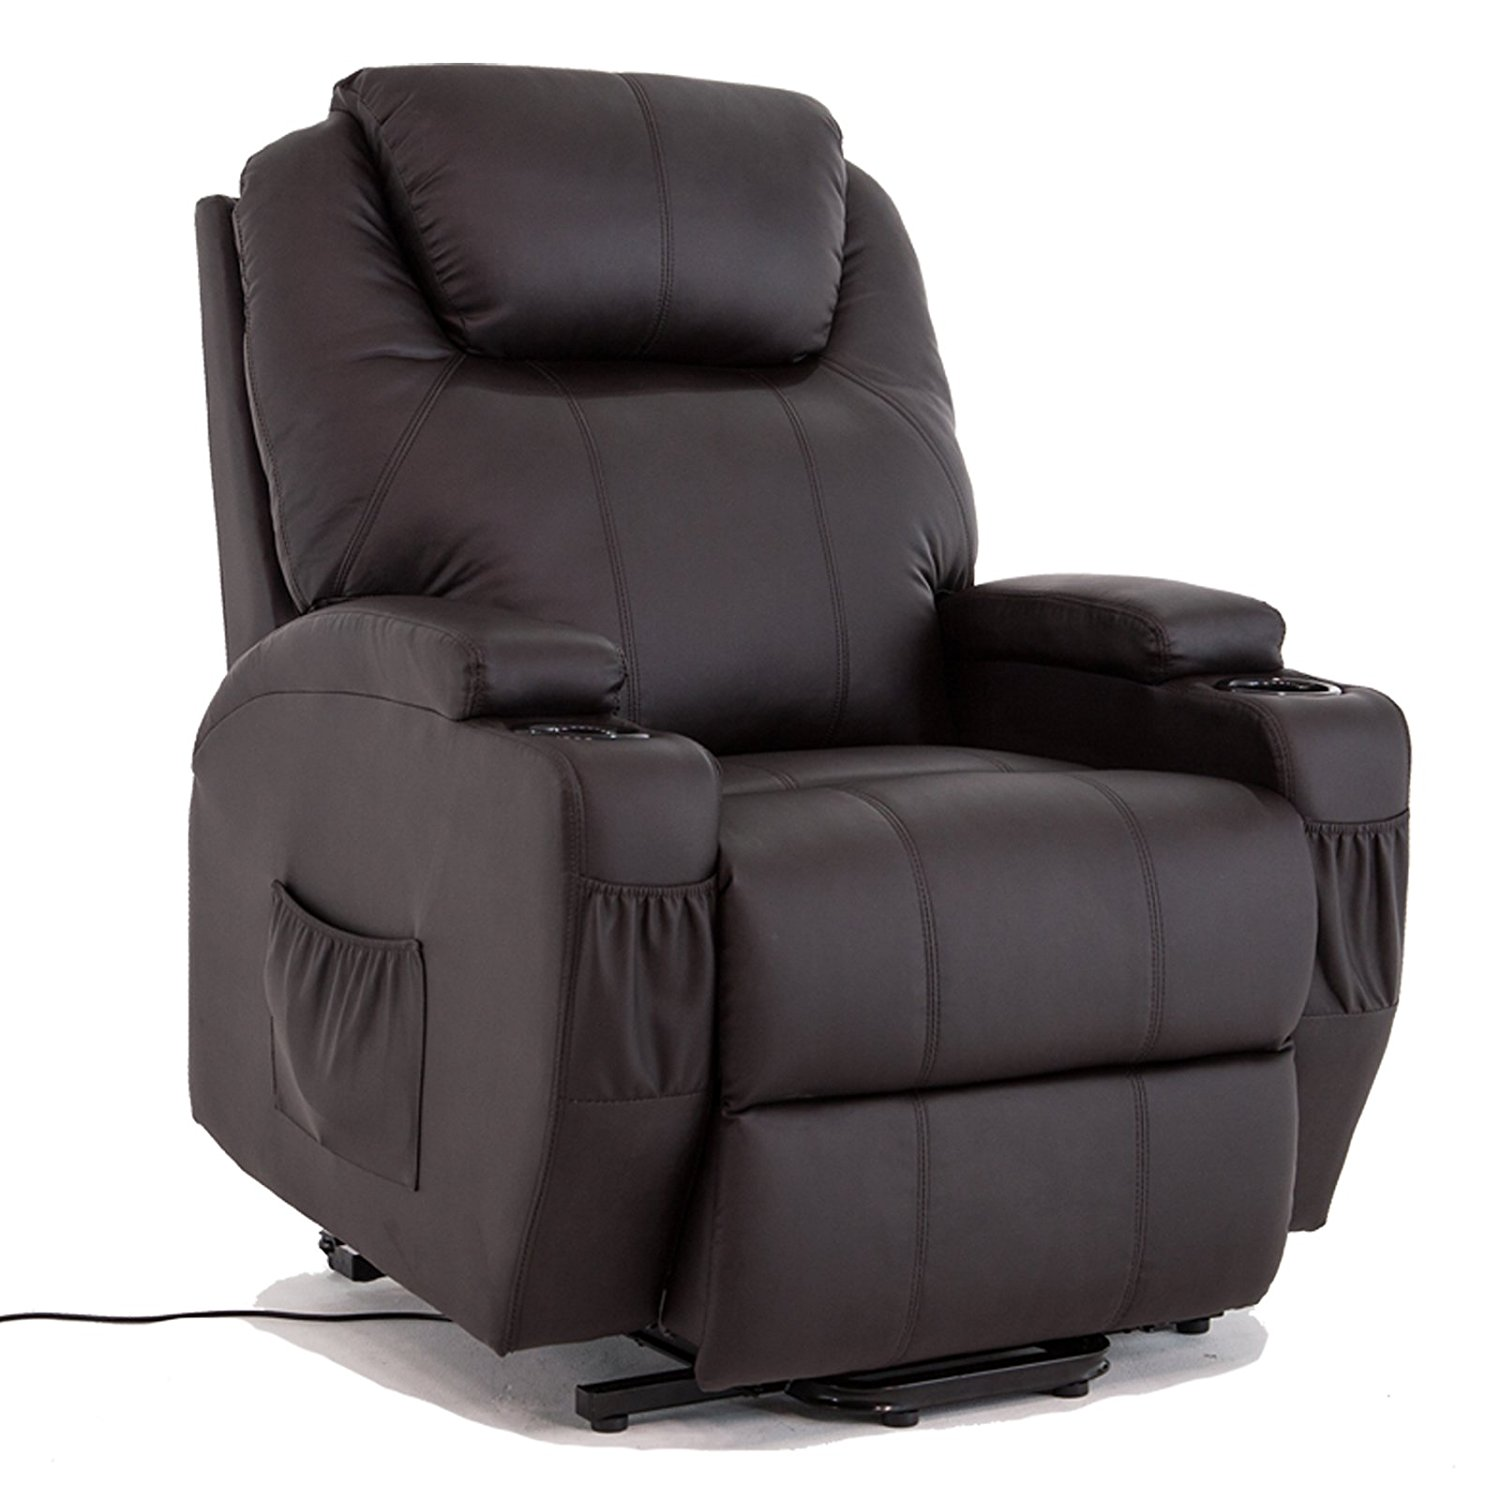 Uenjoy Power Lift Chair Recliner Armchair Real Leather Wall Hugger Lounge Seat Brown  sc 1 st  Walmart & Recliner Chair Lift islam-shia.org